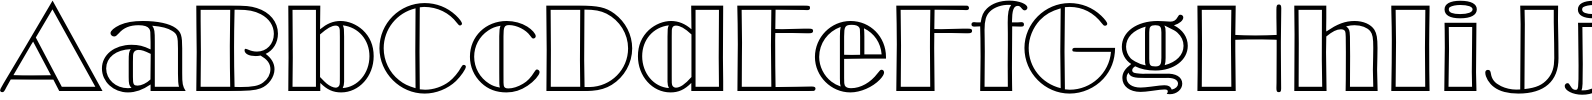 Broadway Outline D Font